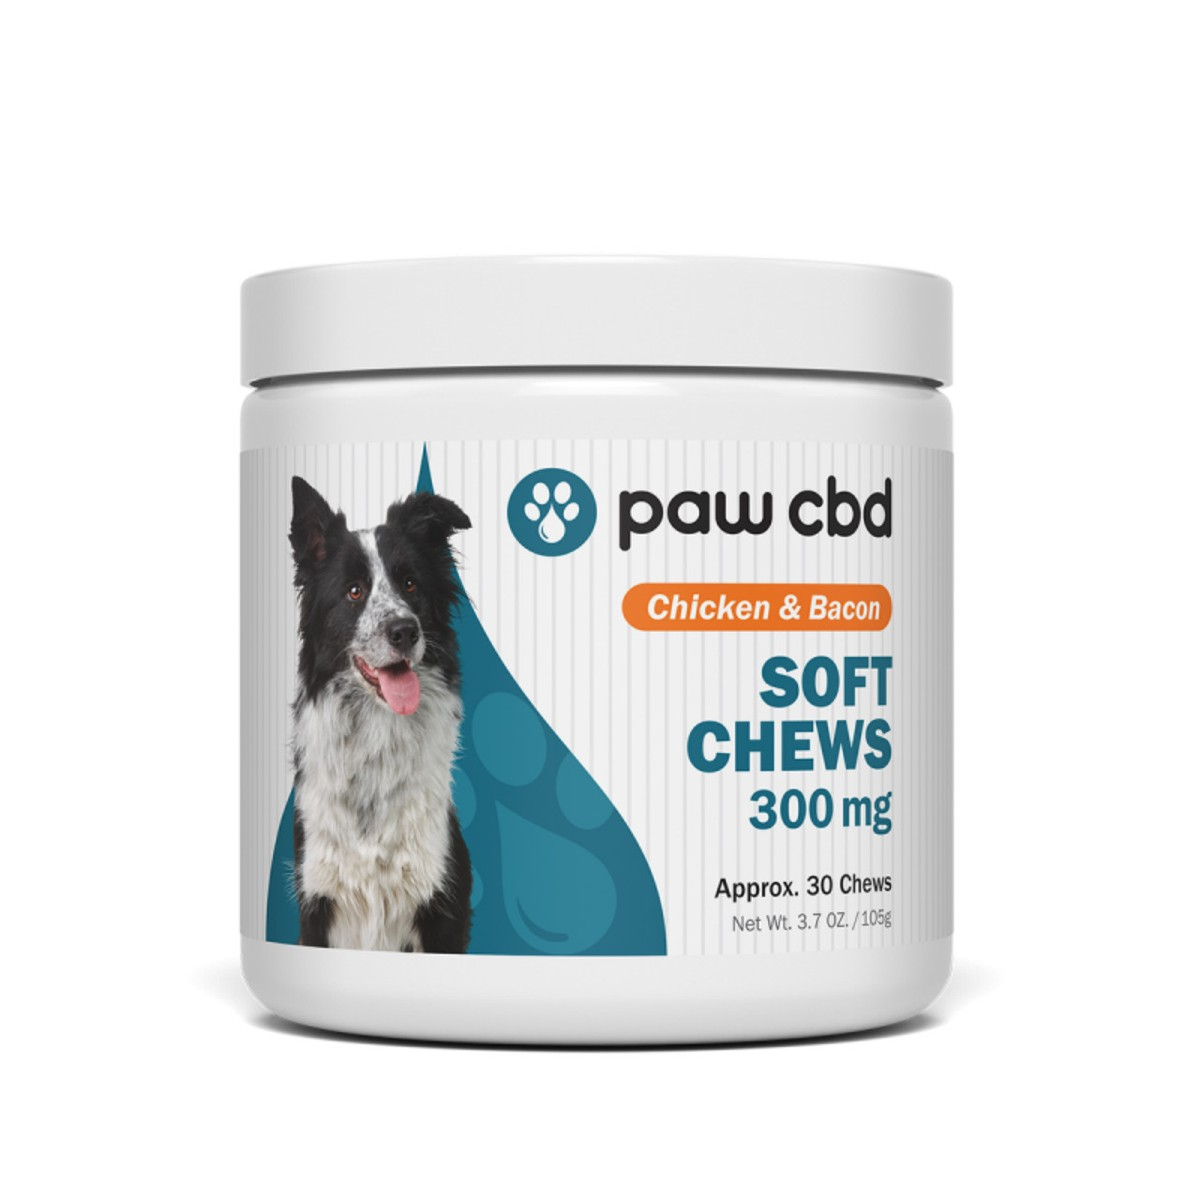 atisfy your dog's appetite with chicken and bacon flavors while serving up natural relief with premium CBD.